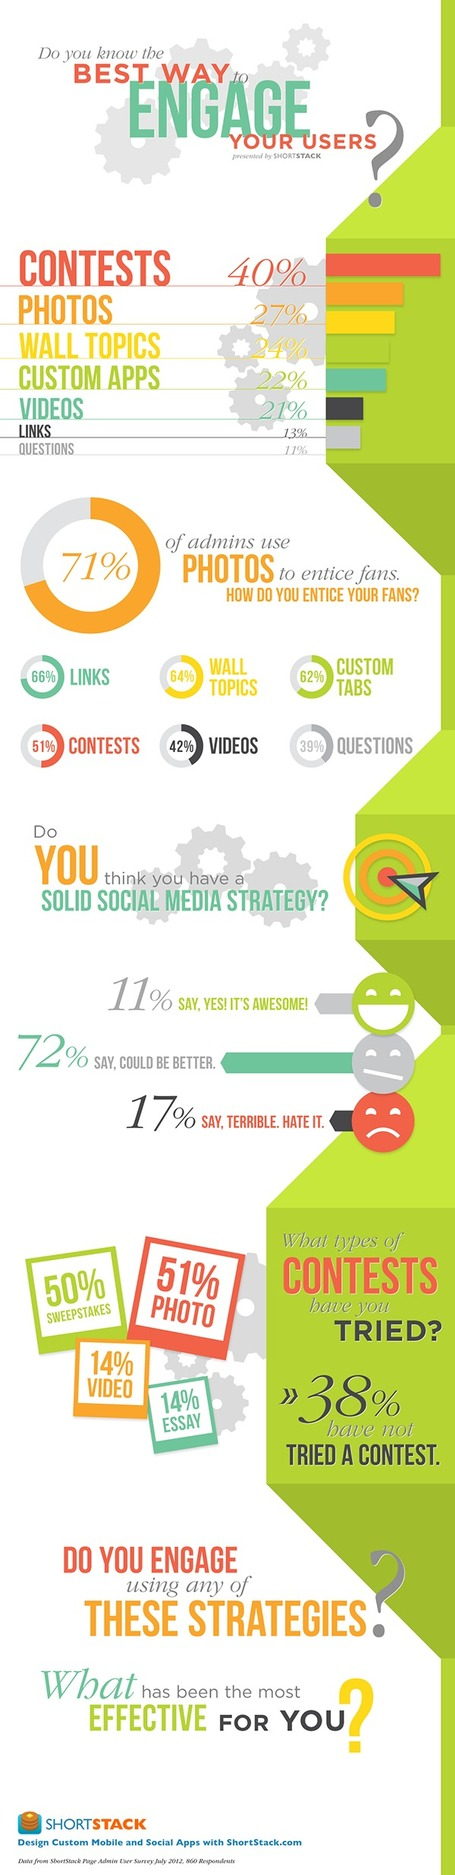 What Are The Best Ways To Engage Social Media Users? [INFOGRAPHIC] | Changes in Advertising | Scoop.it